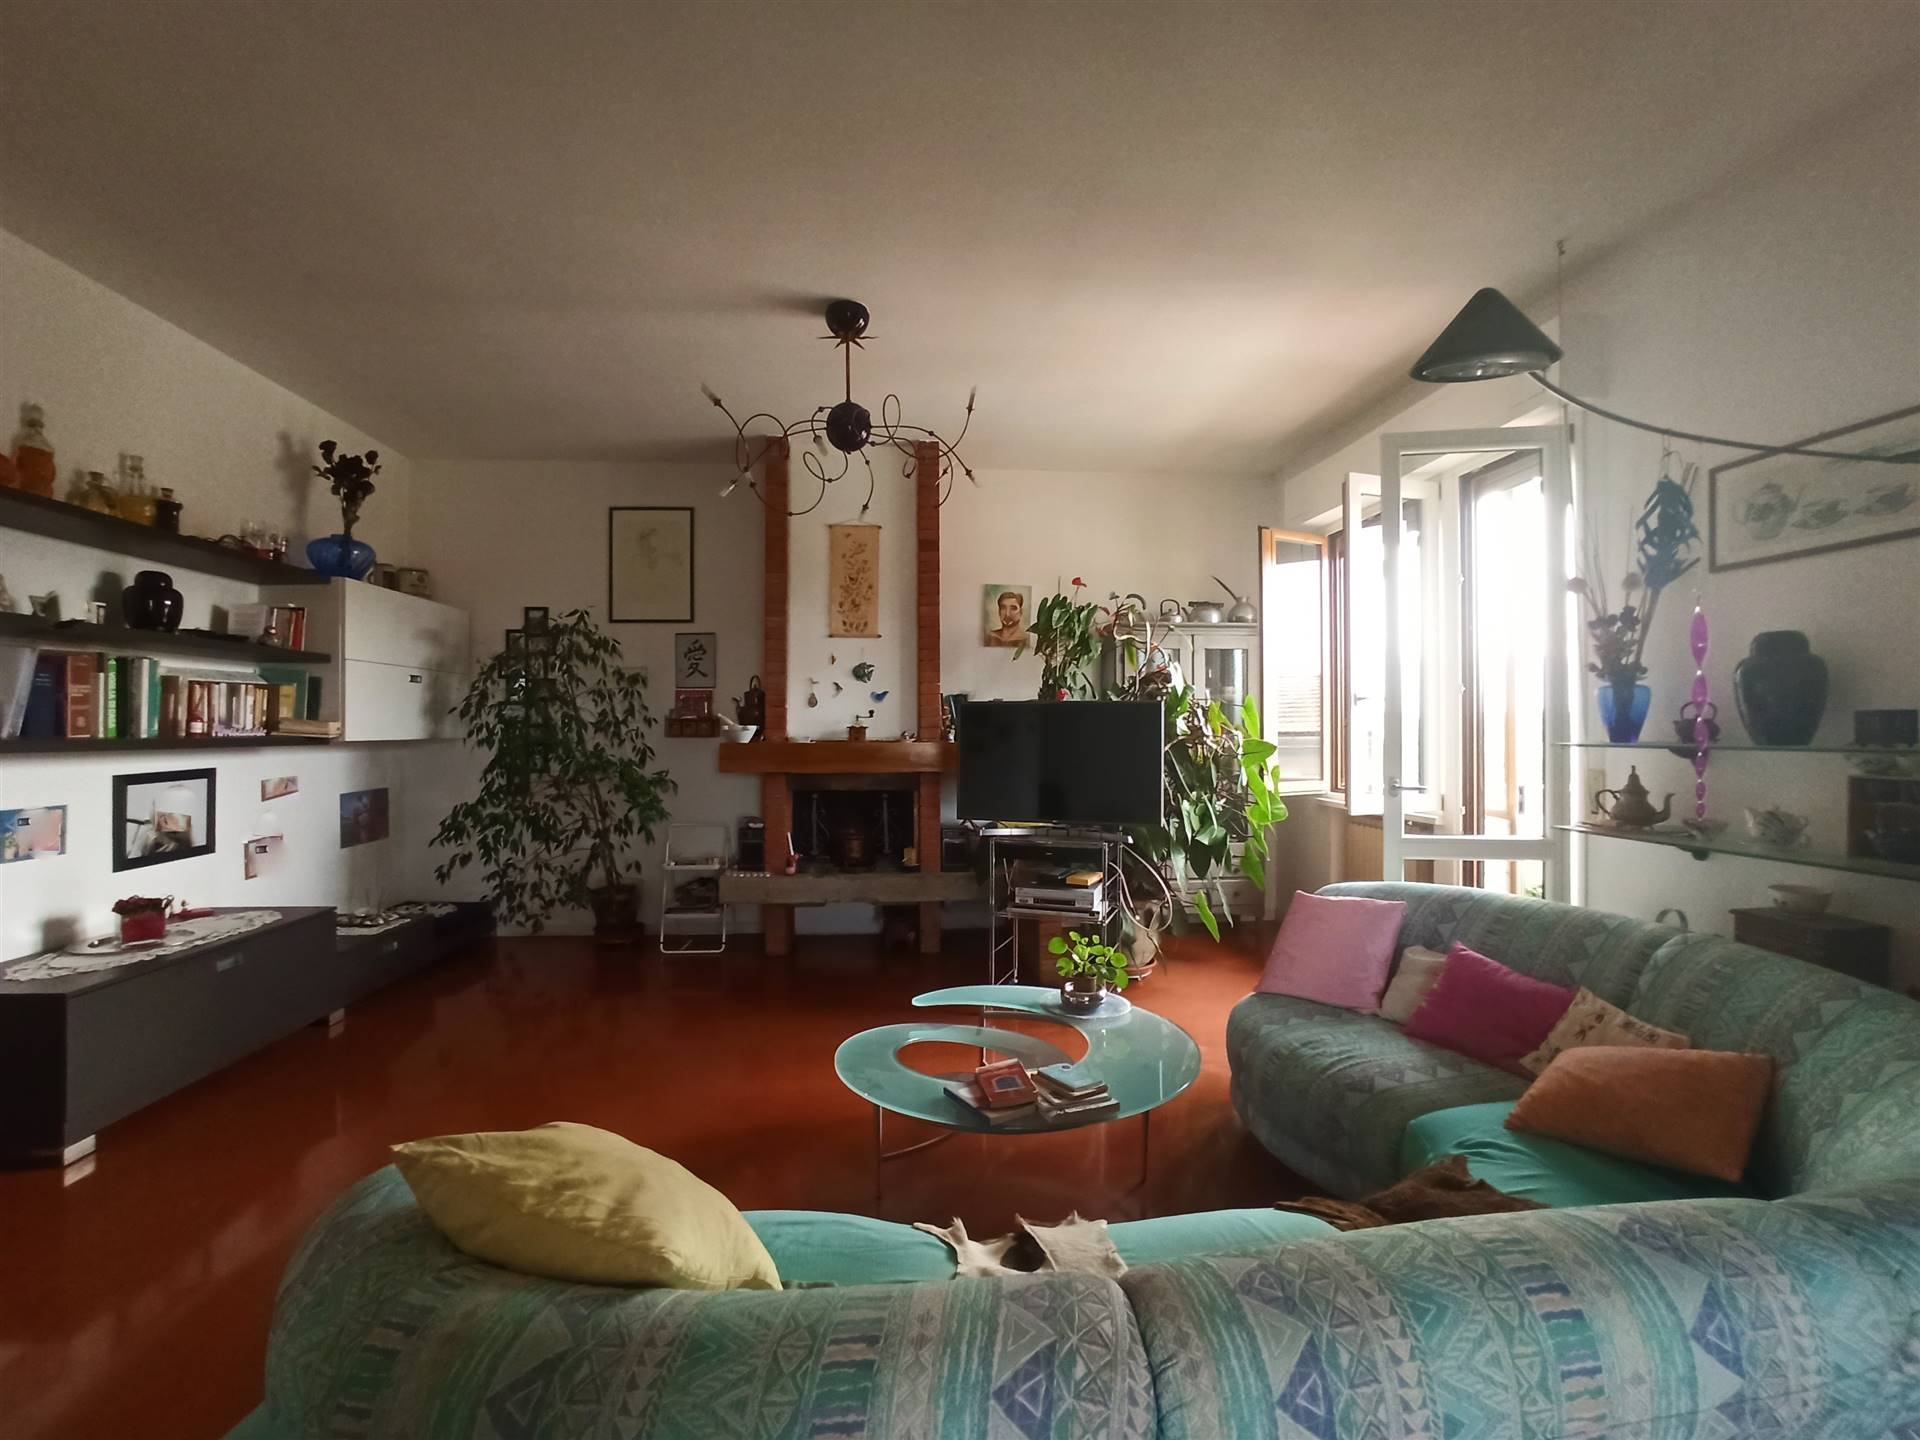 ALDO MORO, CAMPI BISENZIO, Apartment for sale, Good condition, Heating Individual heating system, Energetic class: G, placed at 2° on 2, composed by: